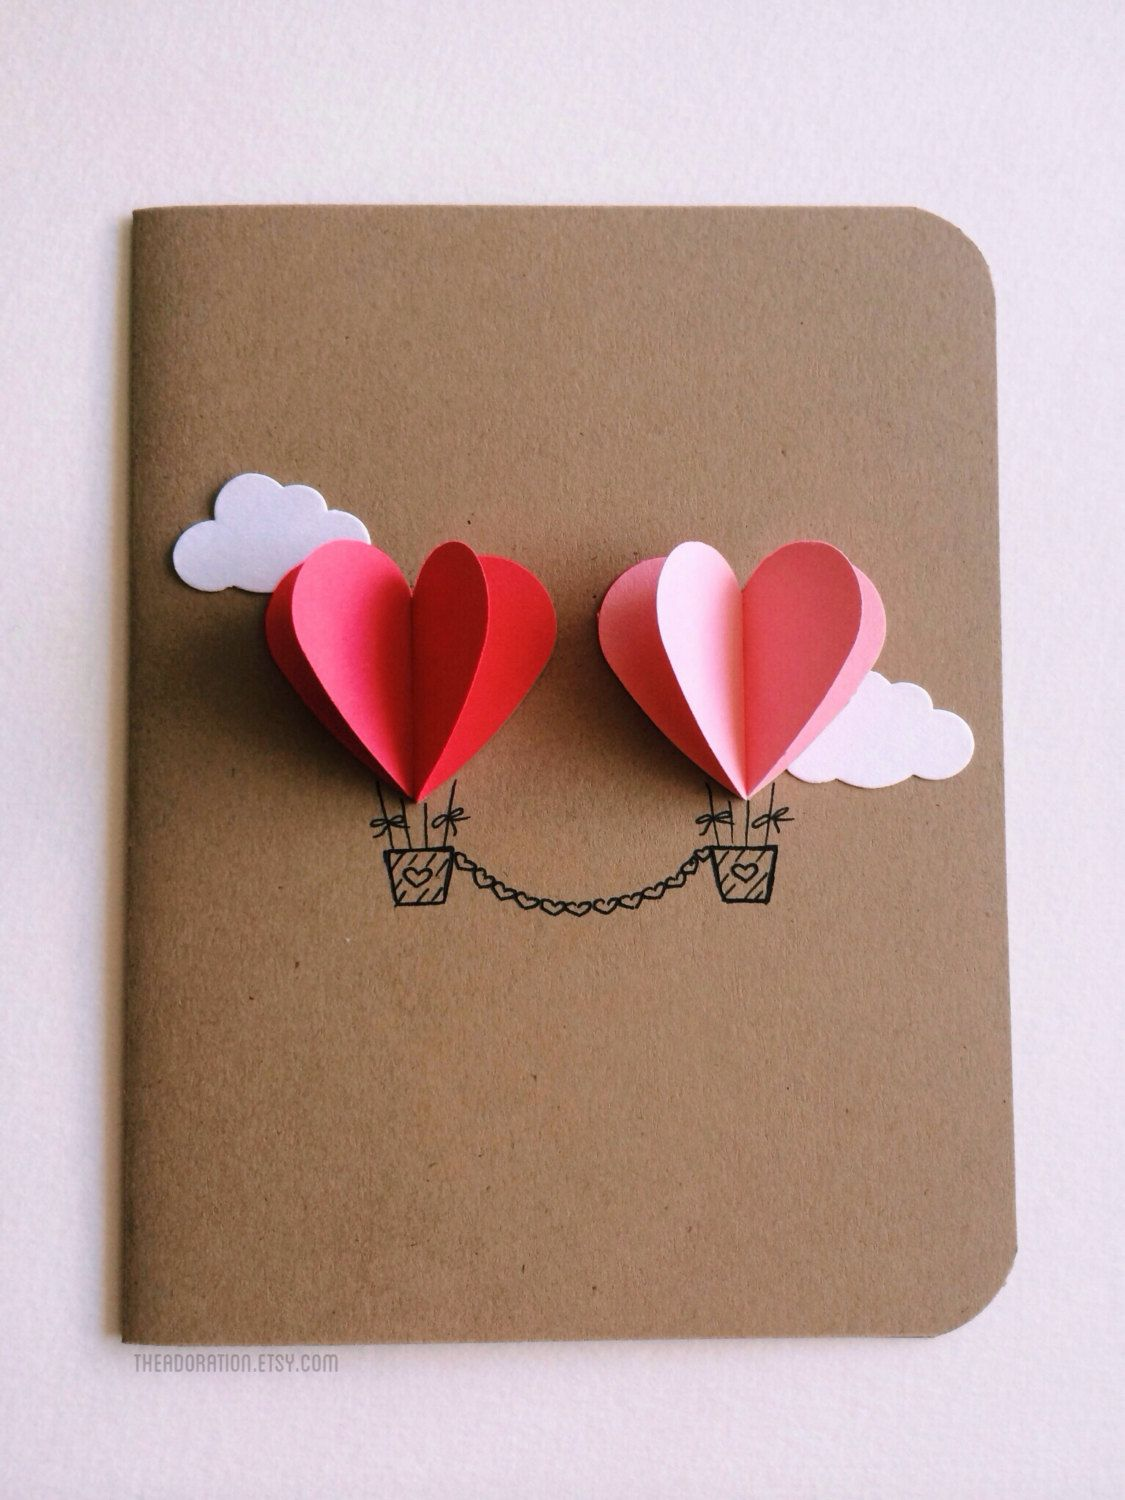 Couple Heart Hot Air Balloon Card Red Pink